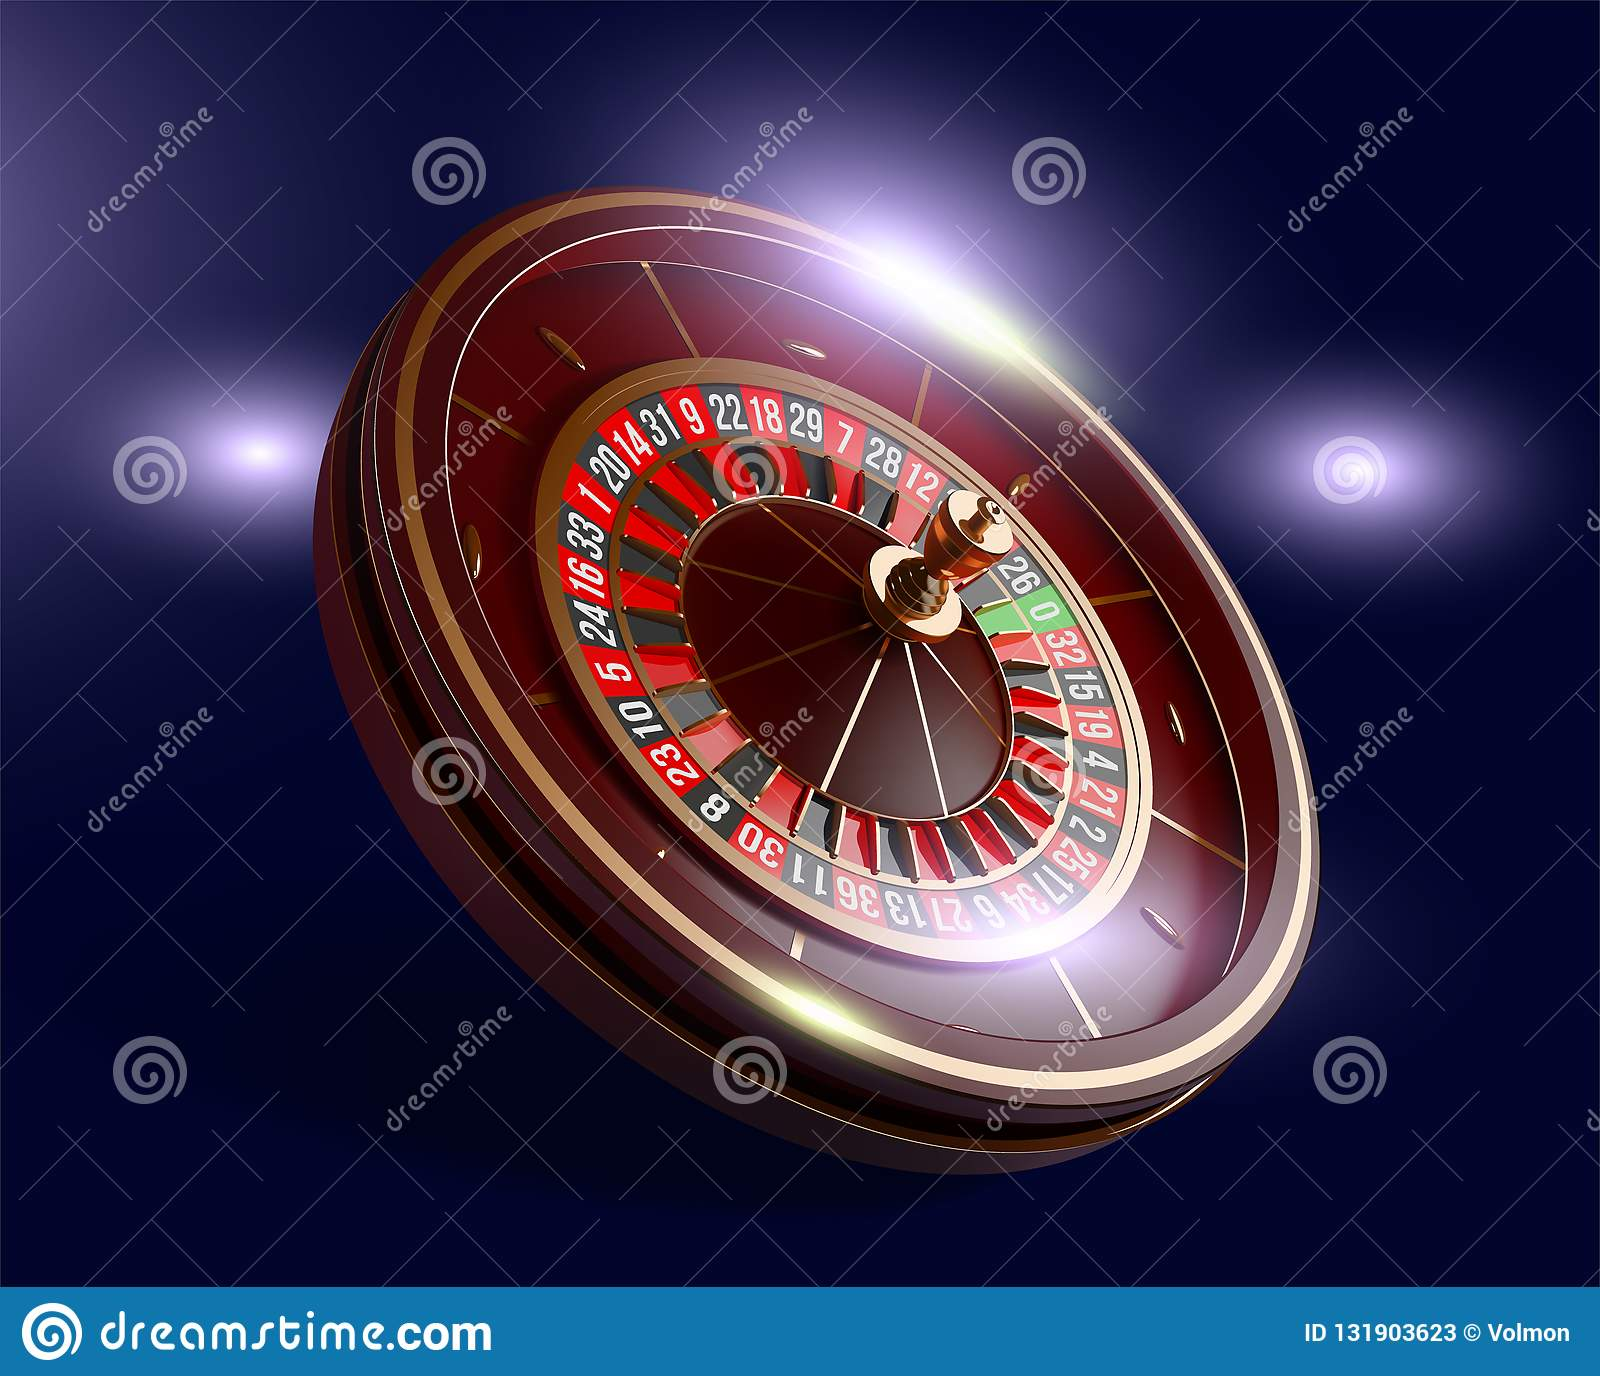 Casino roulette wheel isolated on blue background. 3d realistic vector illustration. Online poker casino roulette